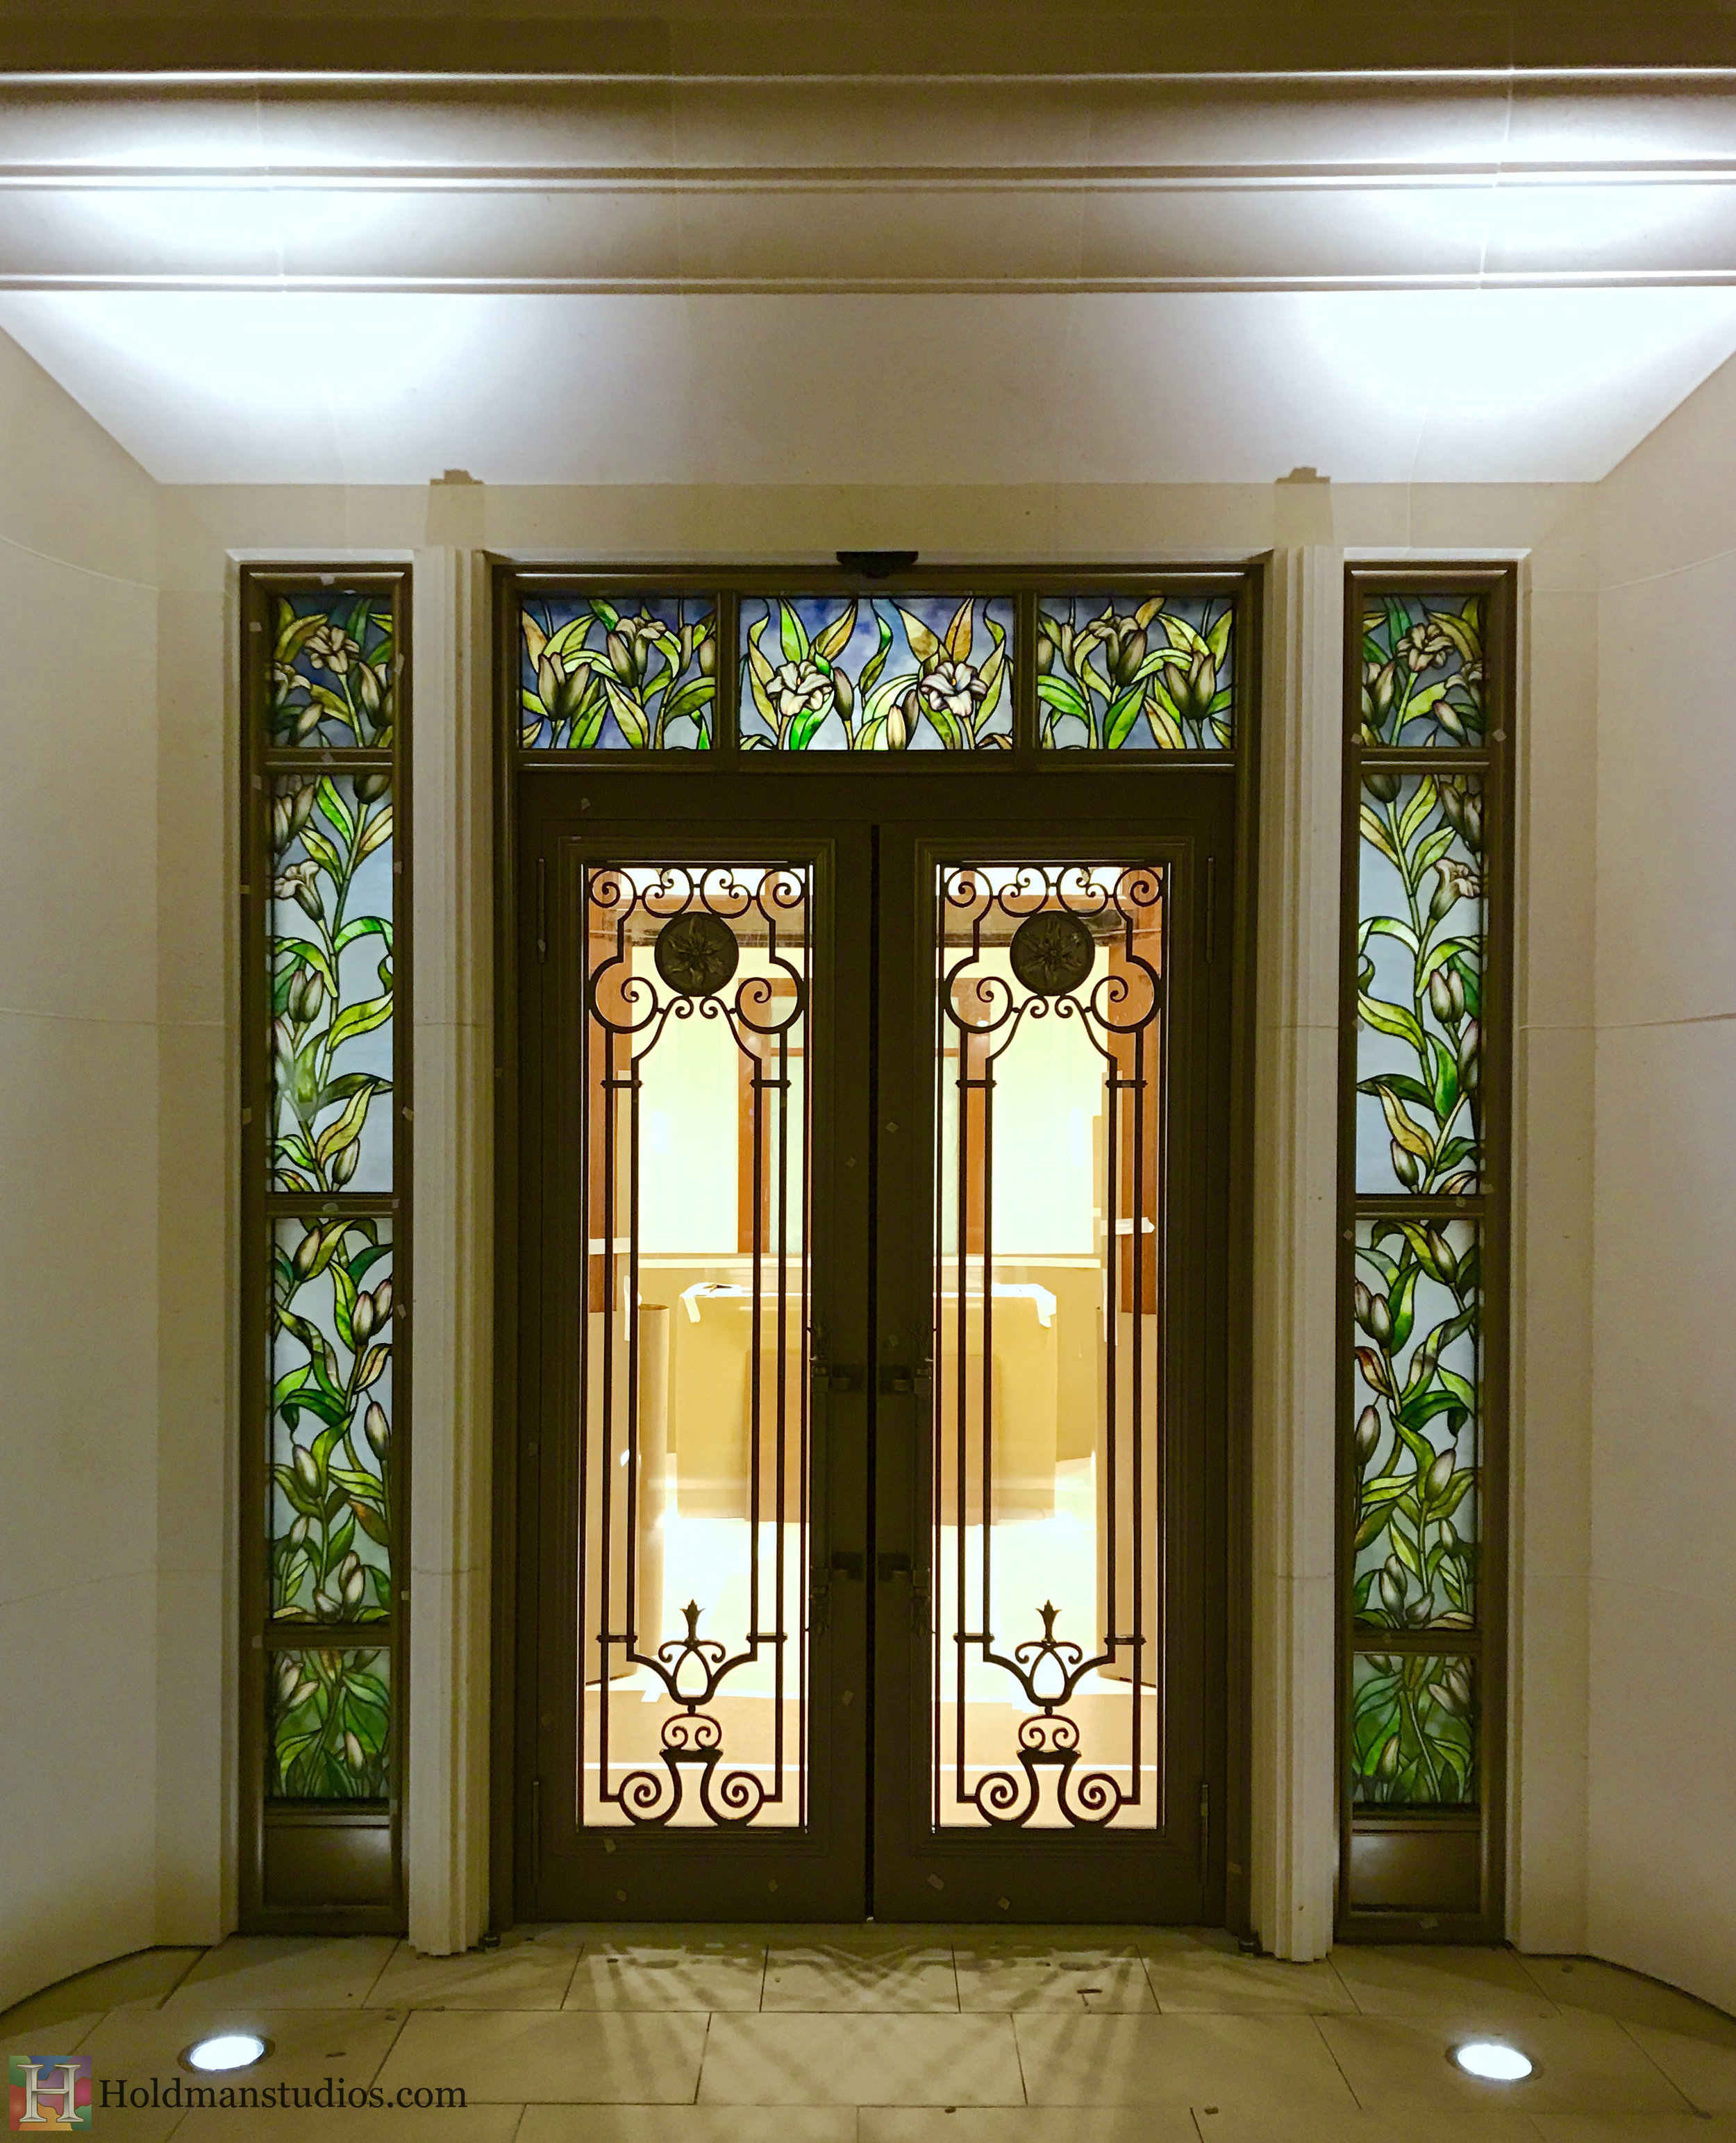 Holdman-Studios-Stained-Etched-Glass-Paris-LDS-Temple-Madonna-Lily-Flowers-Leaves-Outside-Entryway-Windows.jpg